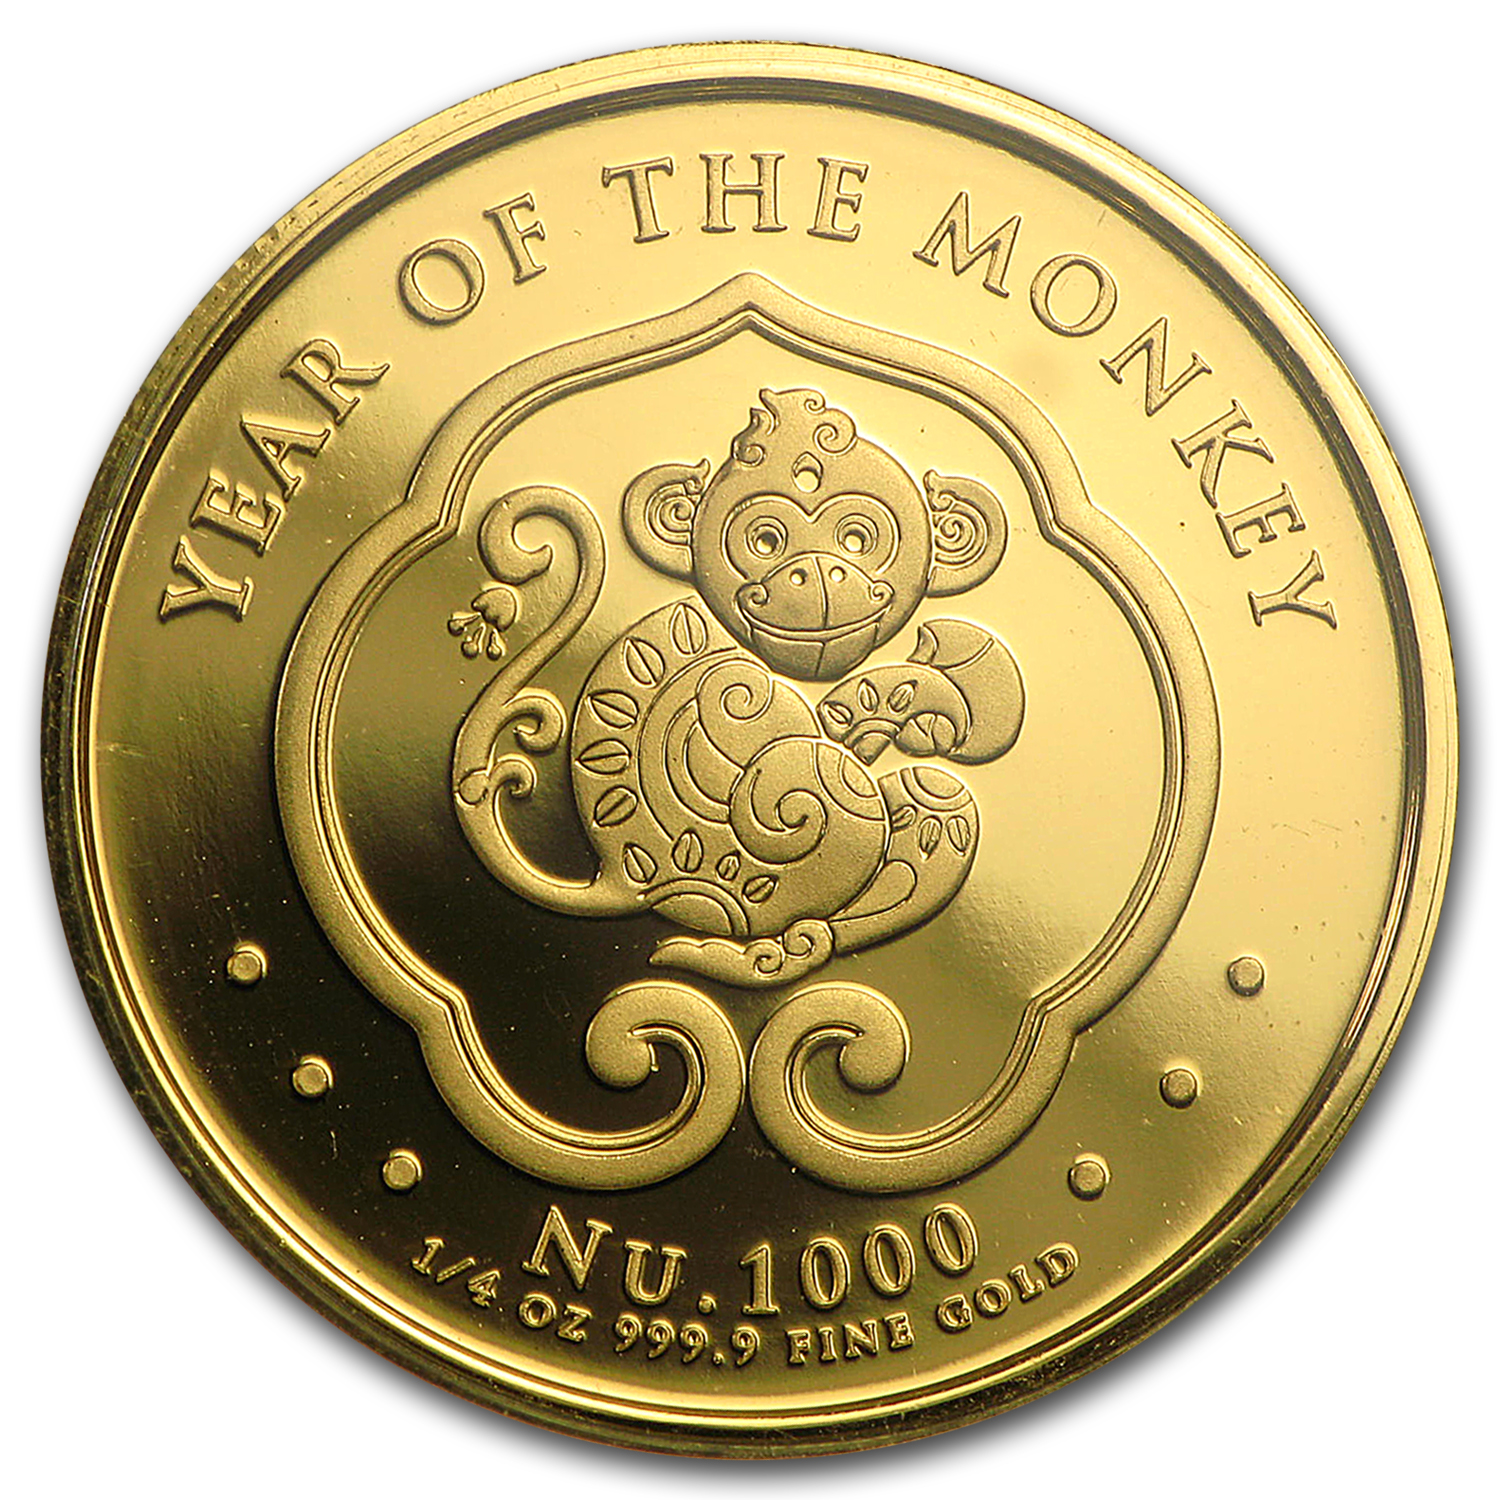 2016 Bhutan 1/4 oz Proof Gold Lunar Monkey